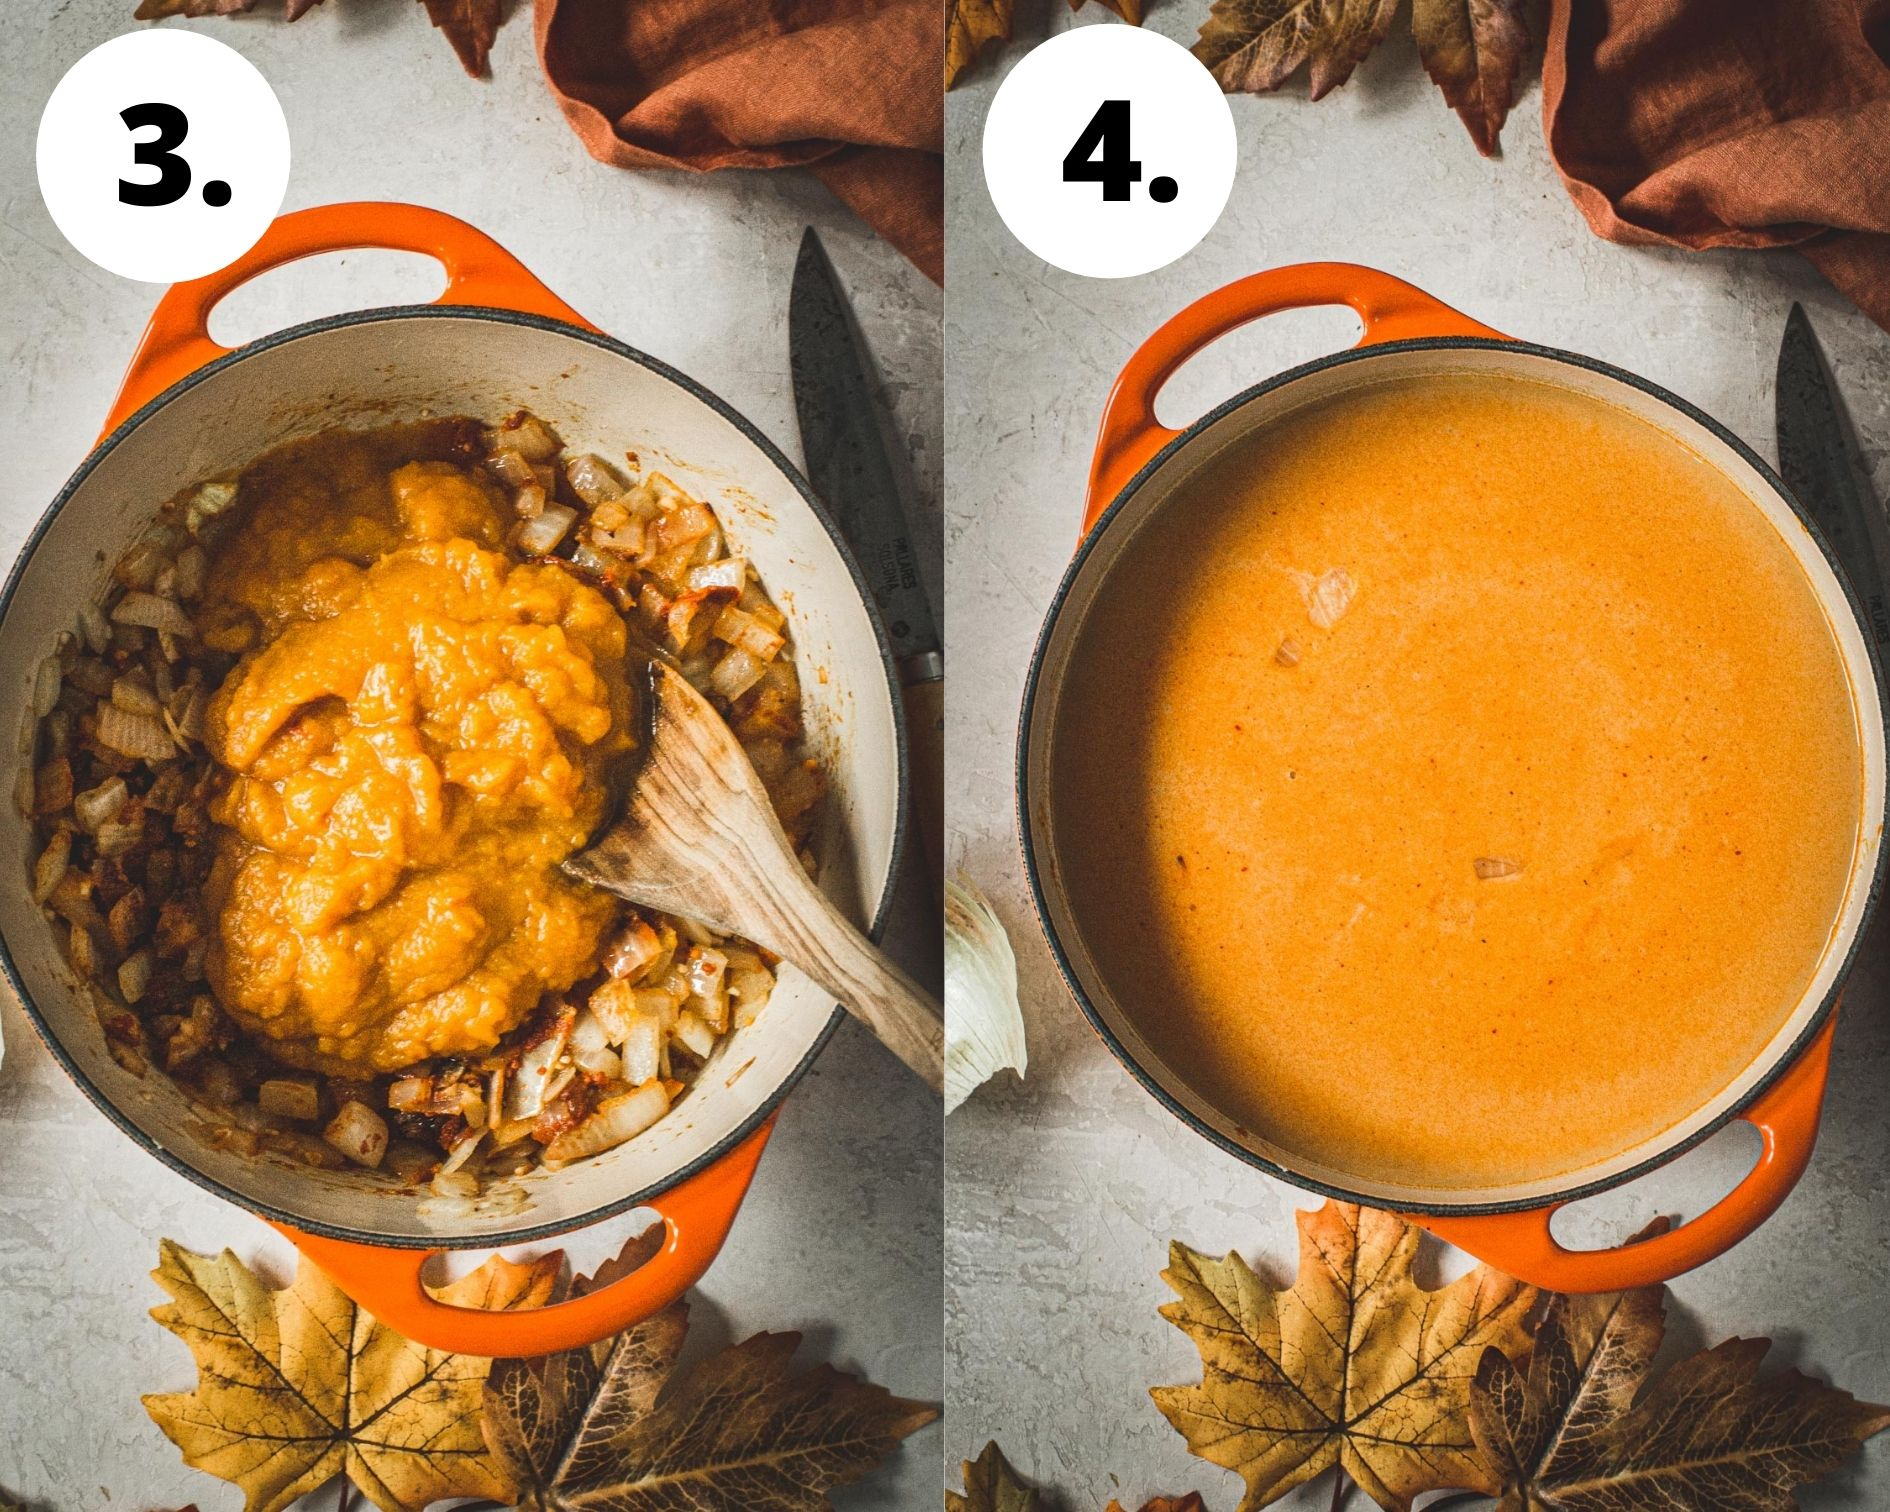 Curried pumpkin soup process steps 3 and 4.